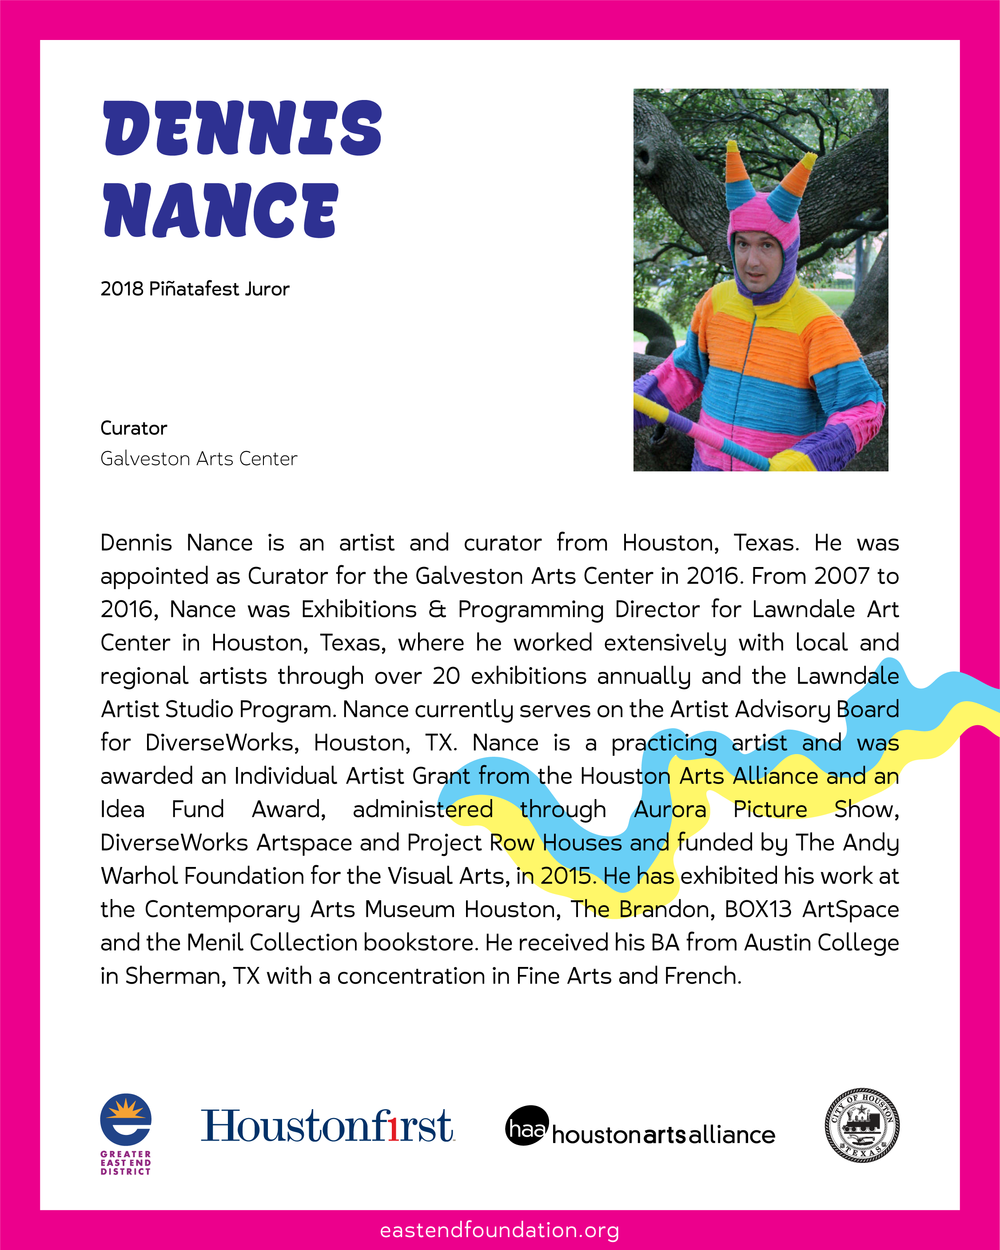 Pinatafest_2018_East_End_Foundation_Houston_Dennis_Nance.png